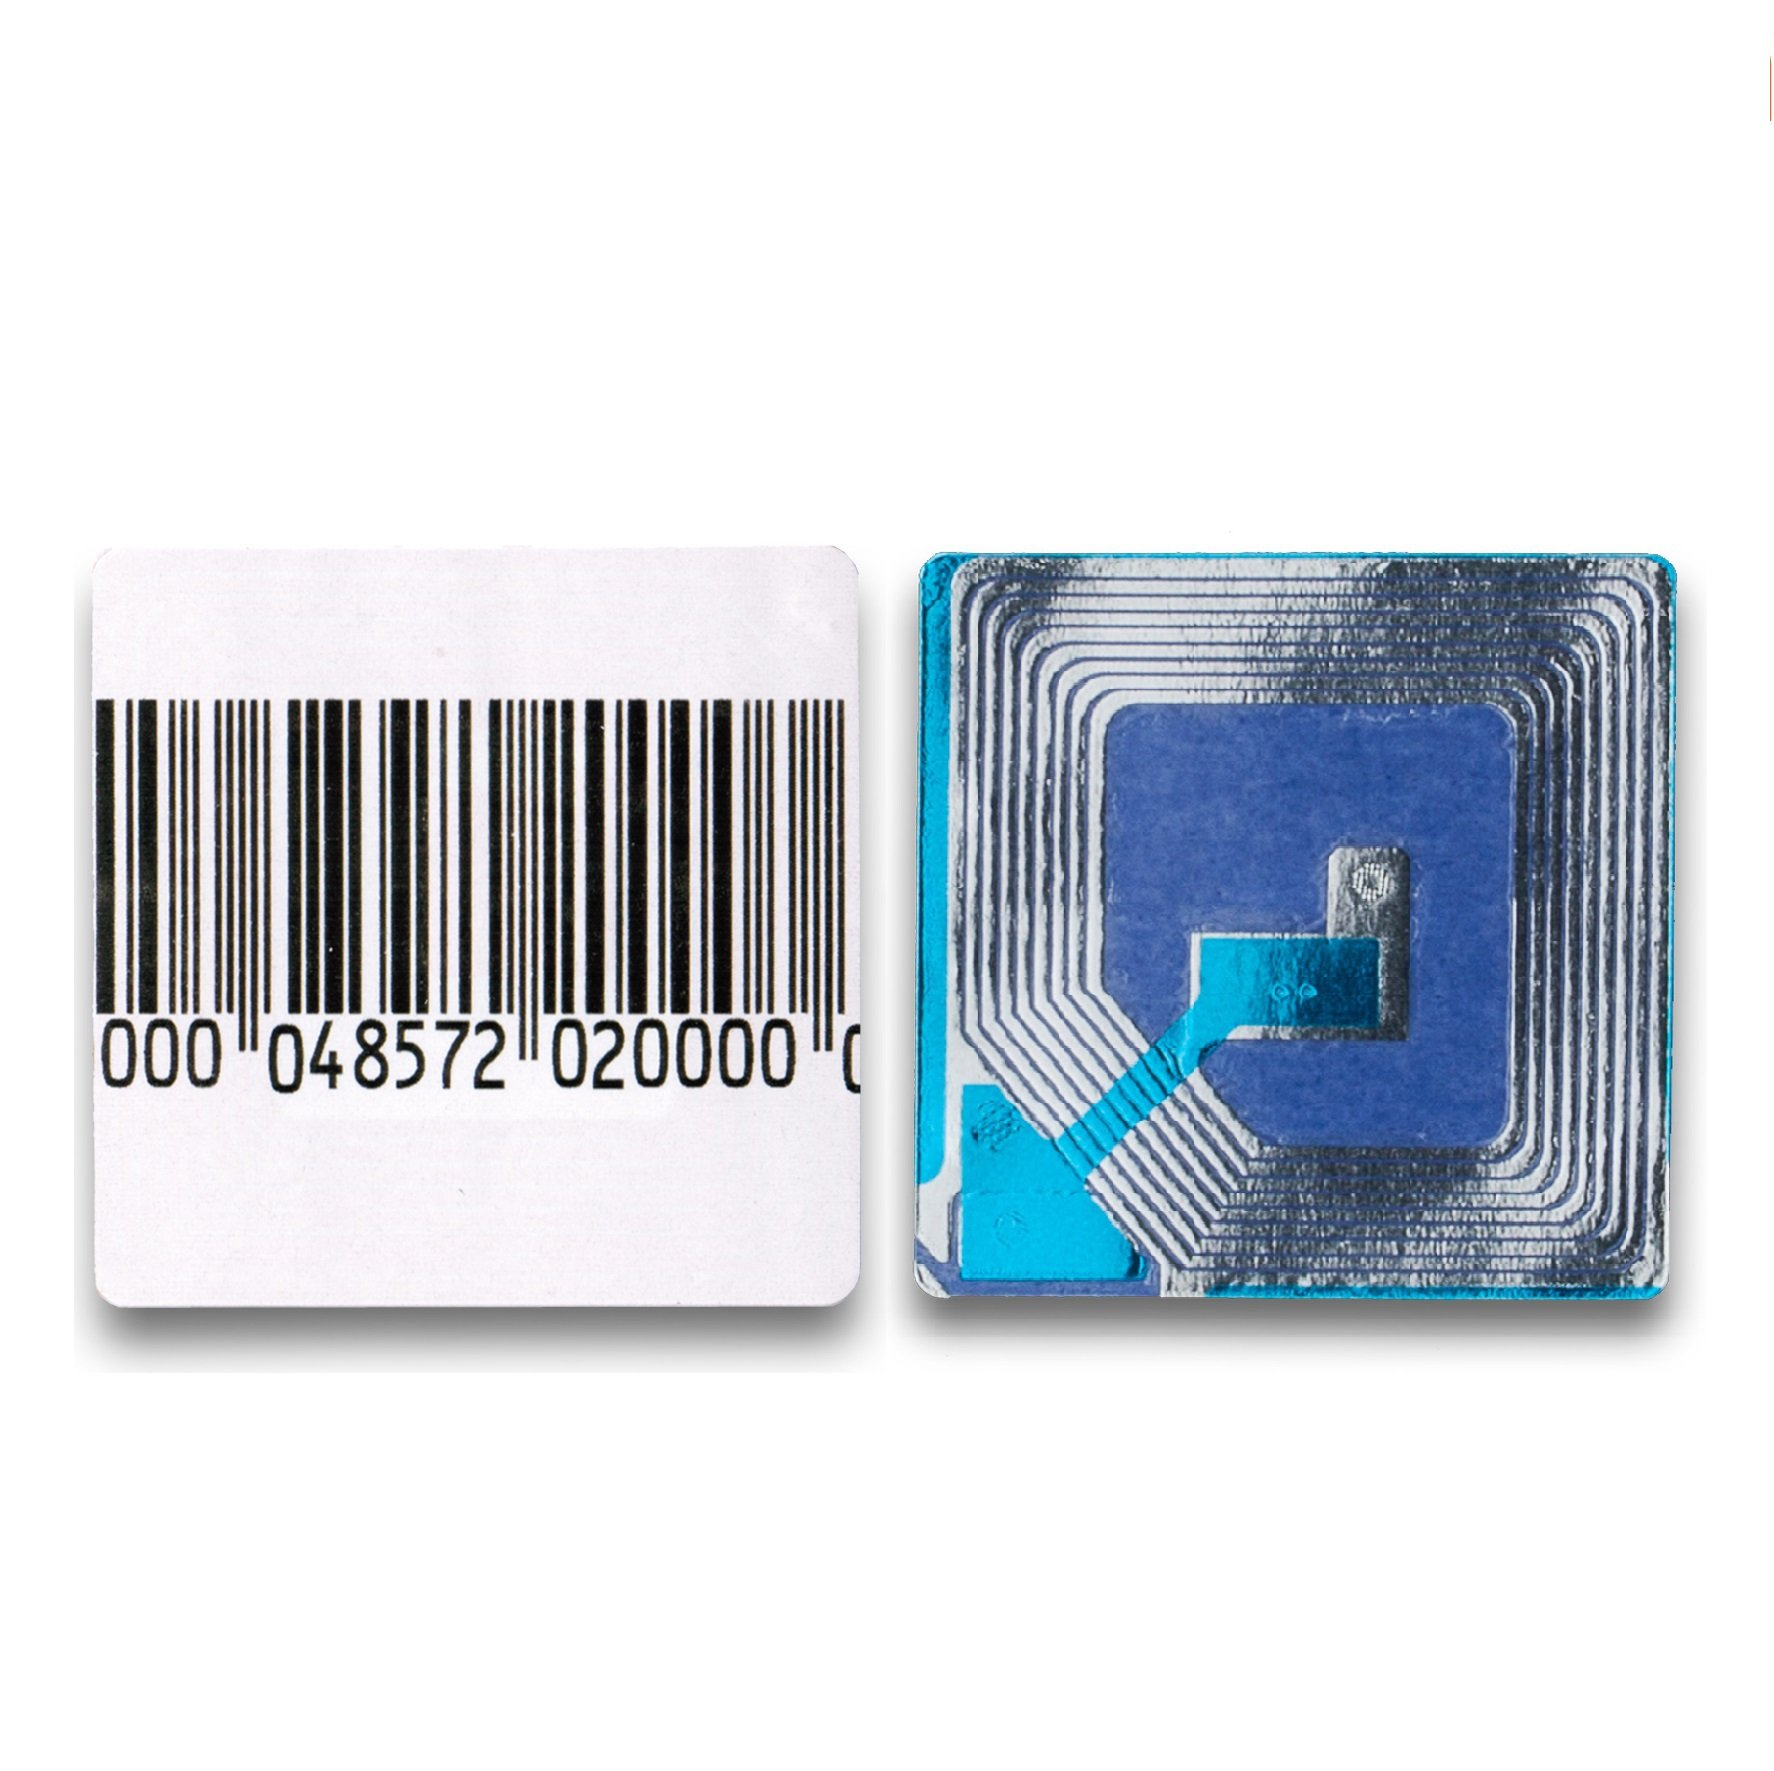 10000 Paper Security Labels 1.5 X 1.5 Inch RF 8.2Mhz Barcode Eas Checkpoint Compatible EAS Loss Prevention by Sensornation (Image #1)